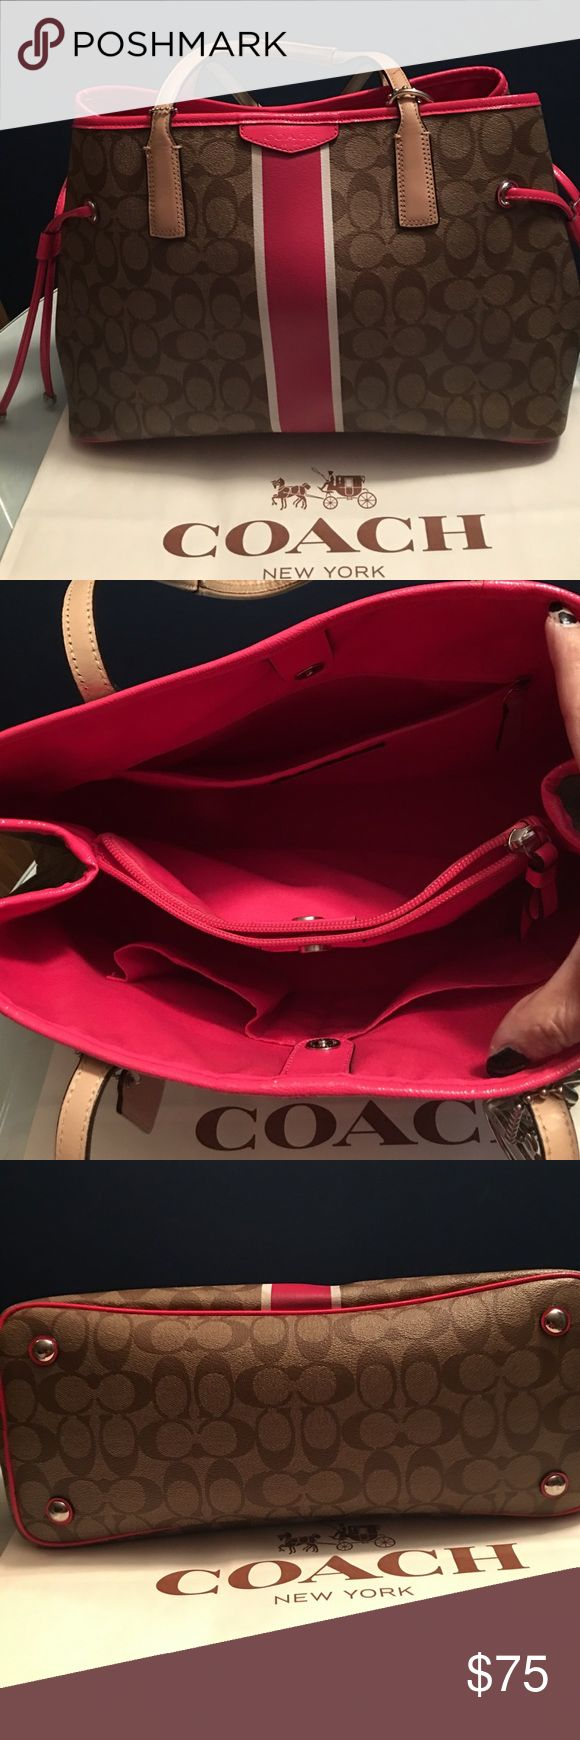 1💯% Authentic Coach Tote Bag 💝💝💝 💯% authentic Coach Tote Bag. There's little tiny scratch at the front of bag (pink area) and one side of strap is a bit worn out ( see last picture) 💝💝💝💝 Coach Bags Totes